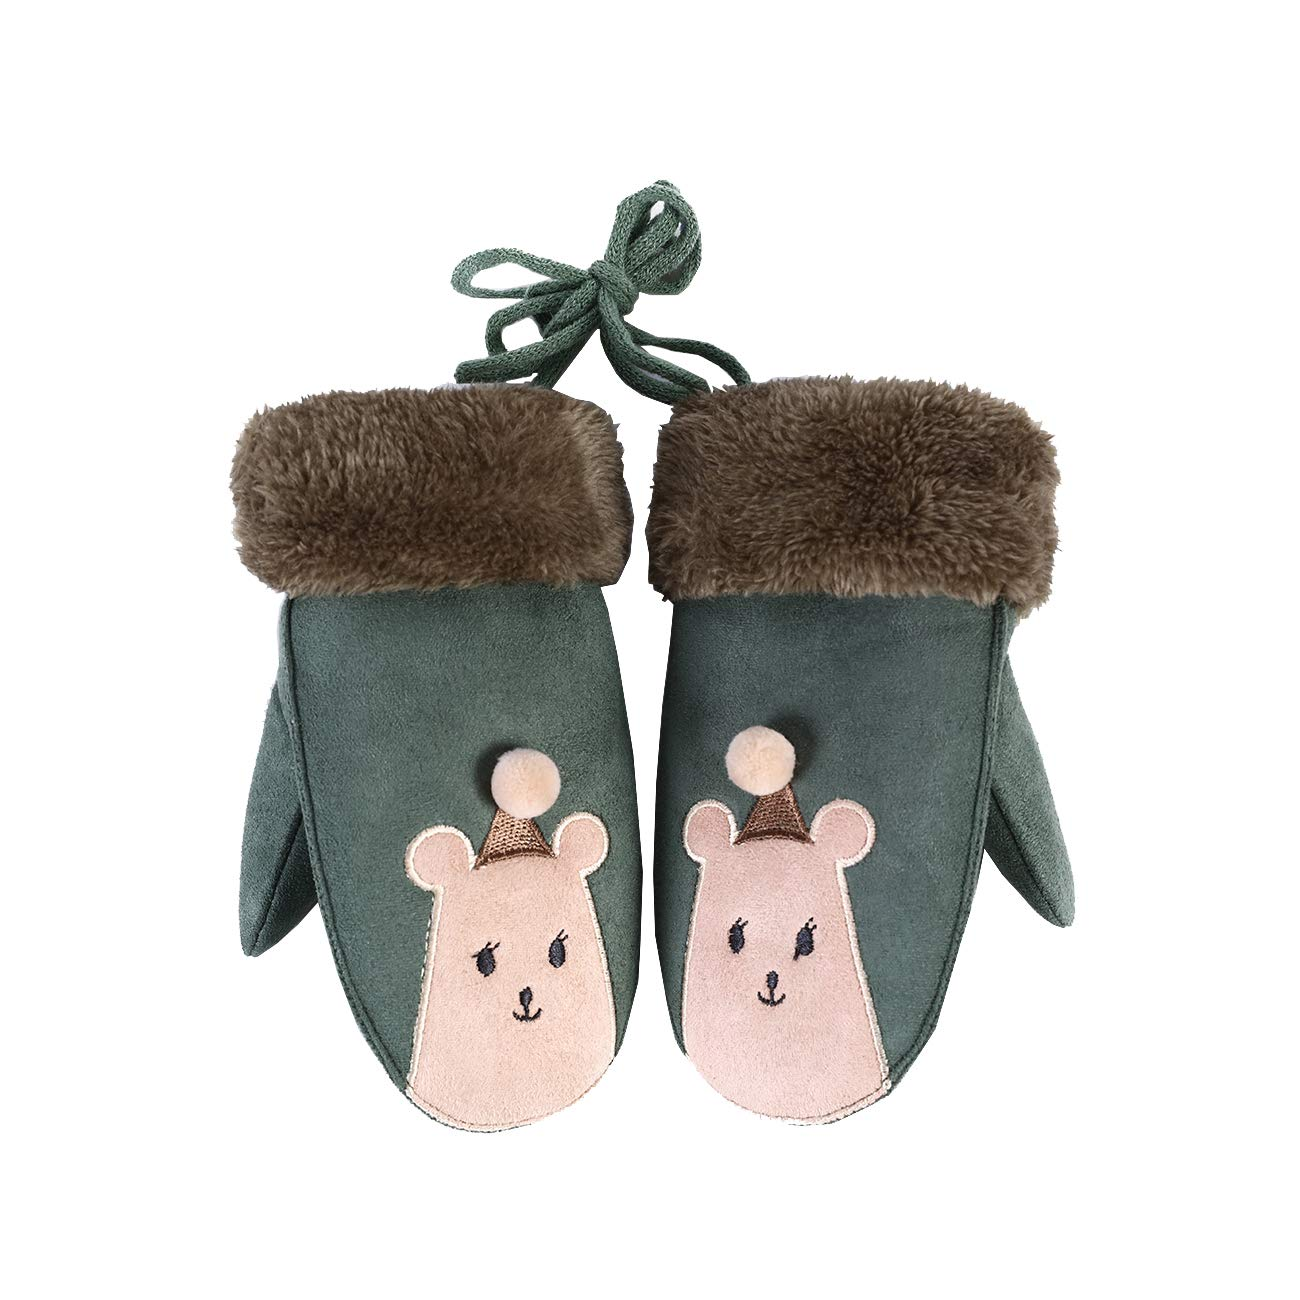 Color 4 W-RHYME Girls Mittens with Strings Warm Thick Faux Suede Gloves